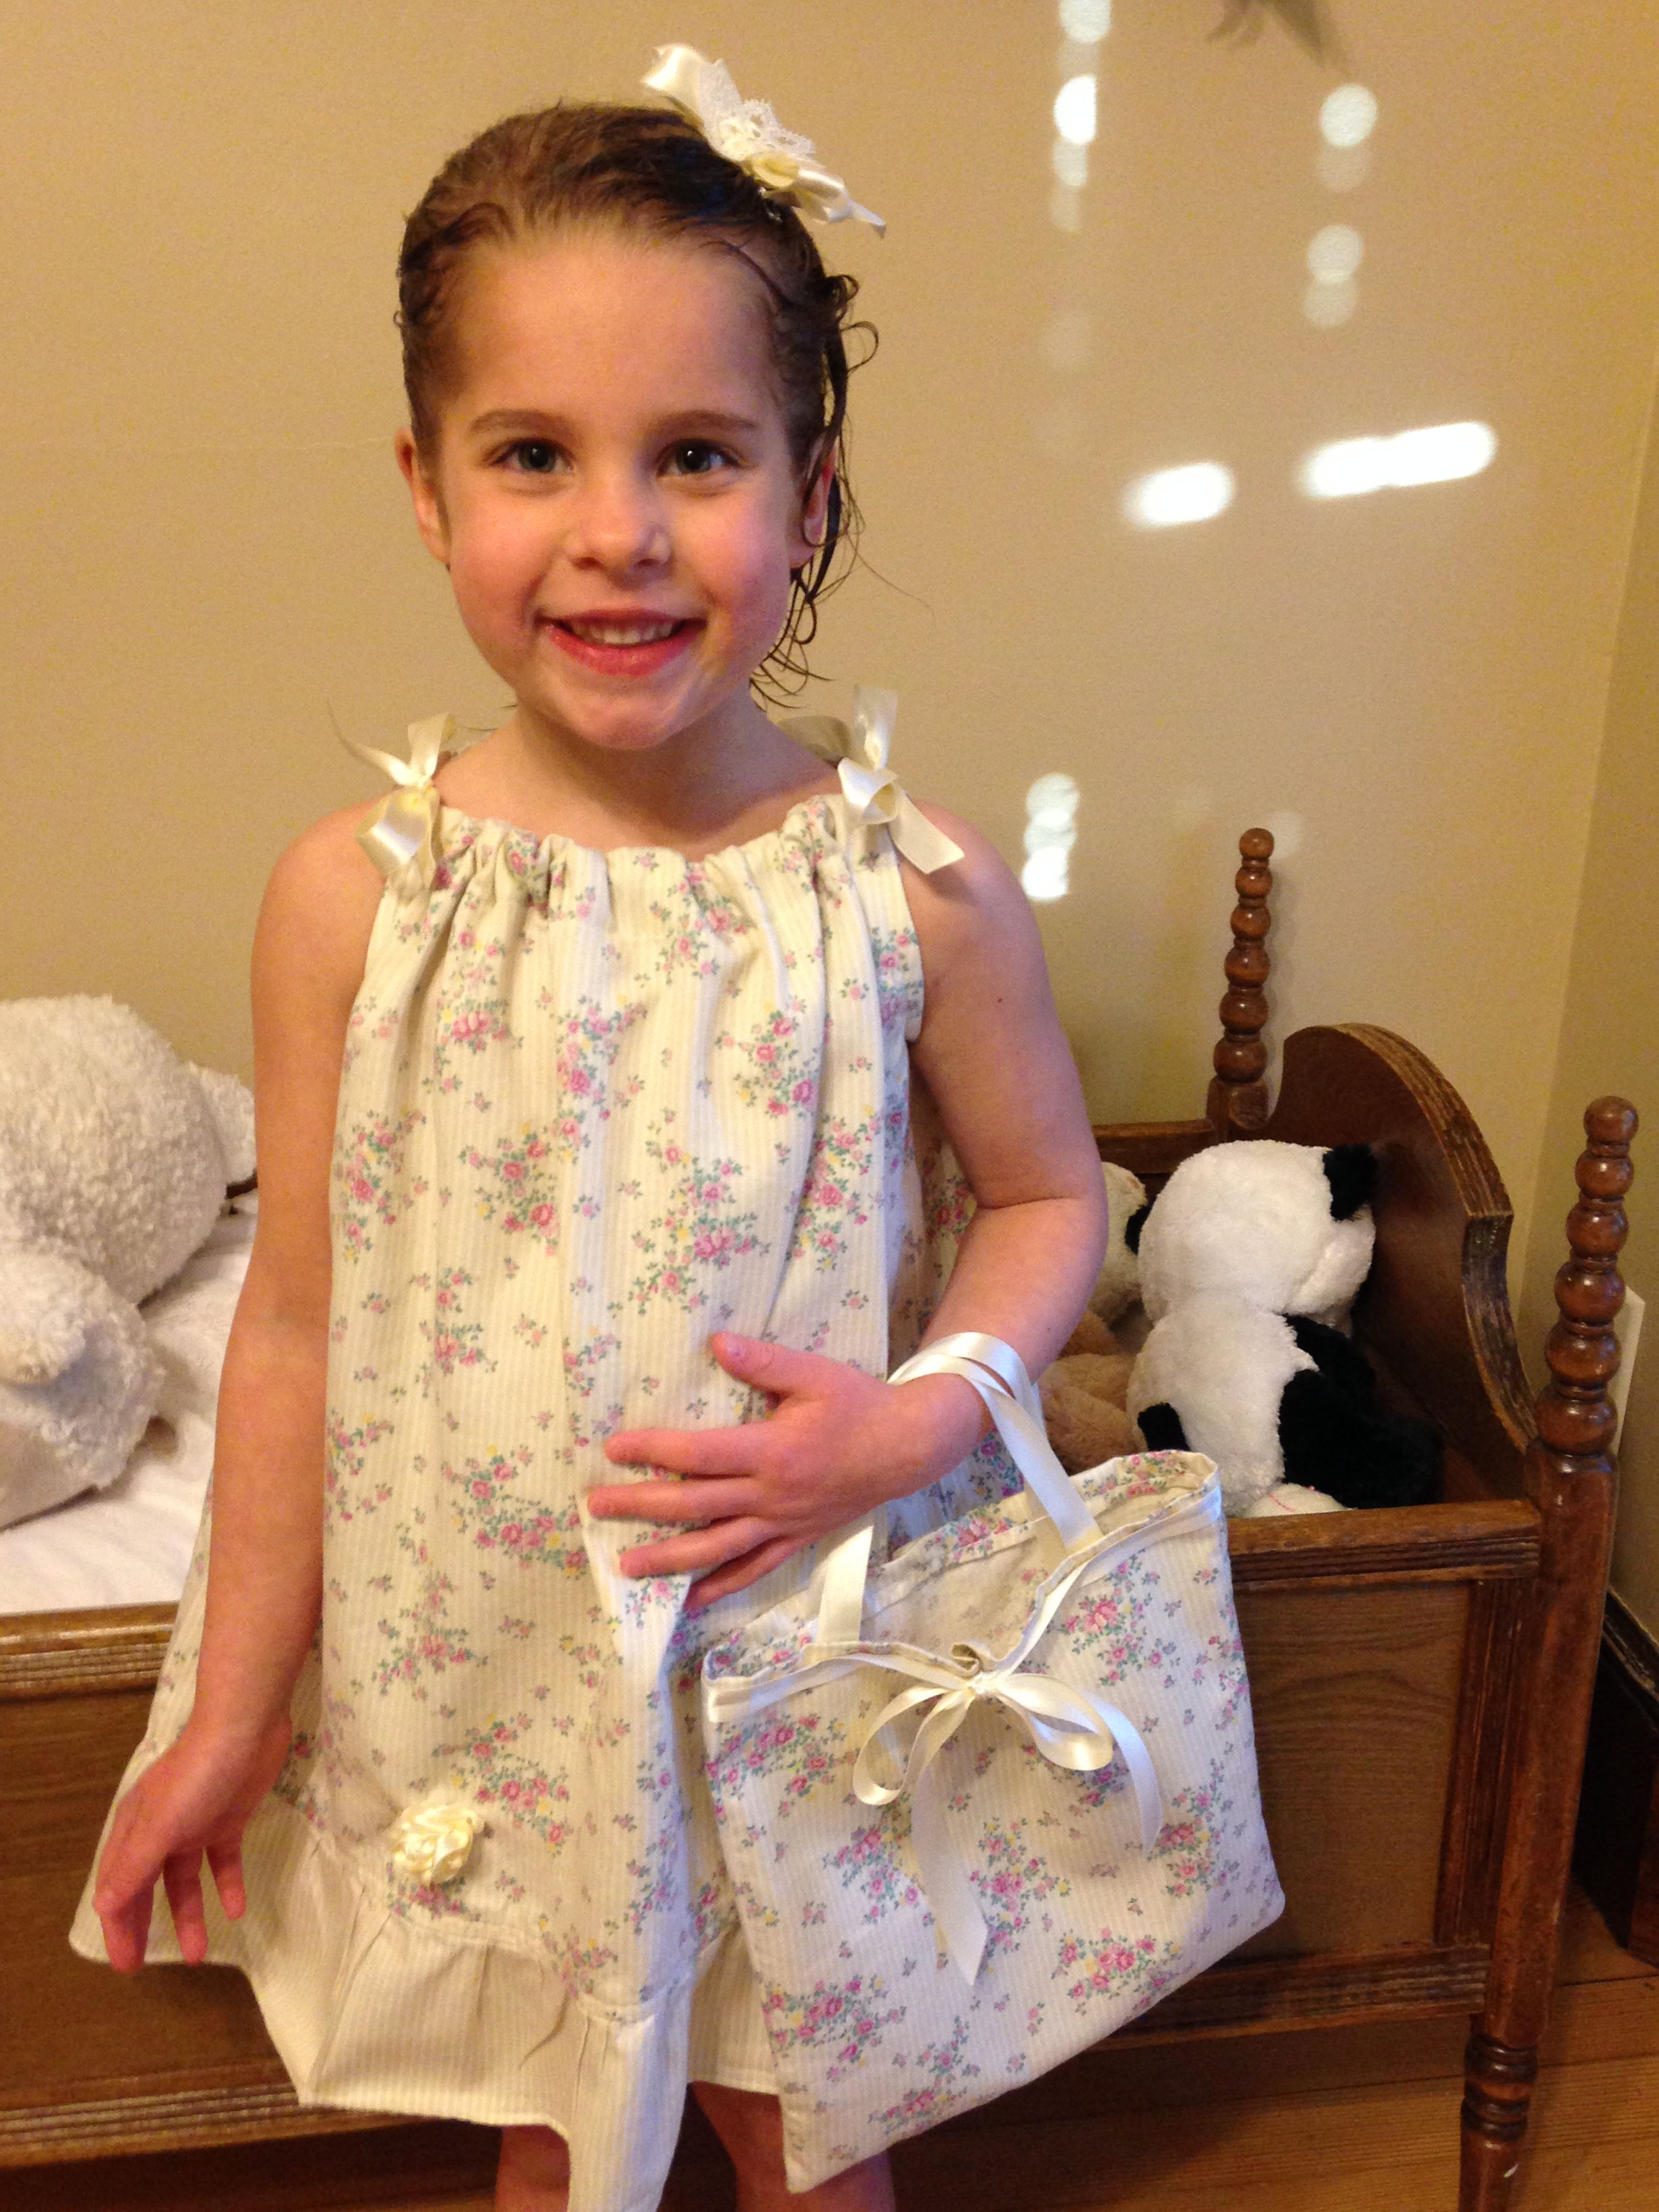 Pillowcase dress on the sweetest girl with a matching purse and rosettes made by her mom.